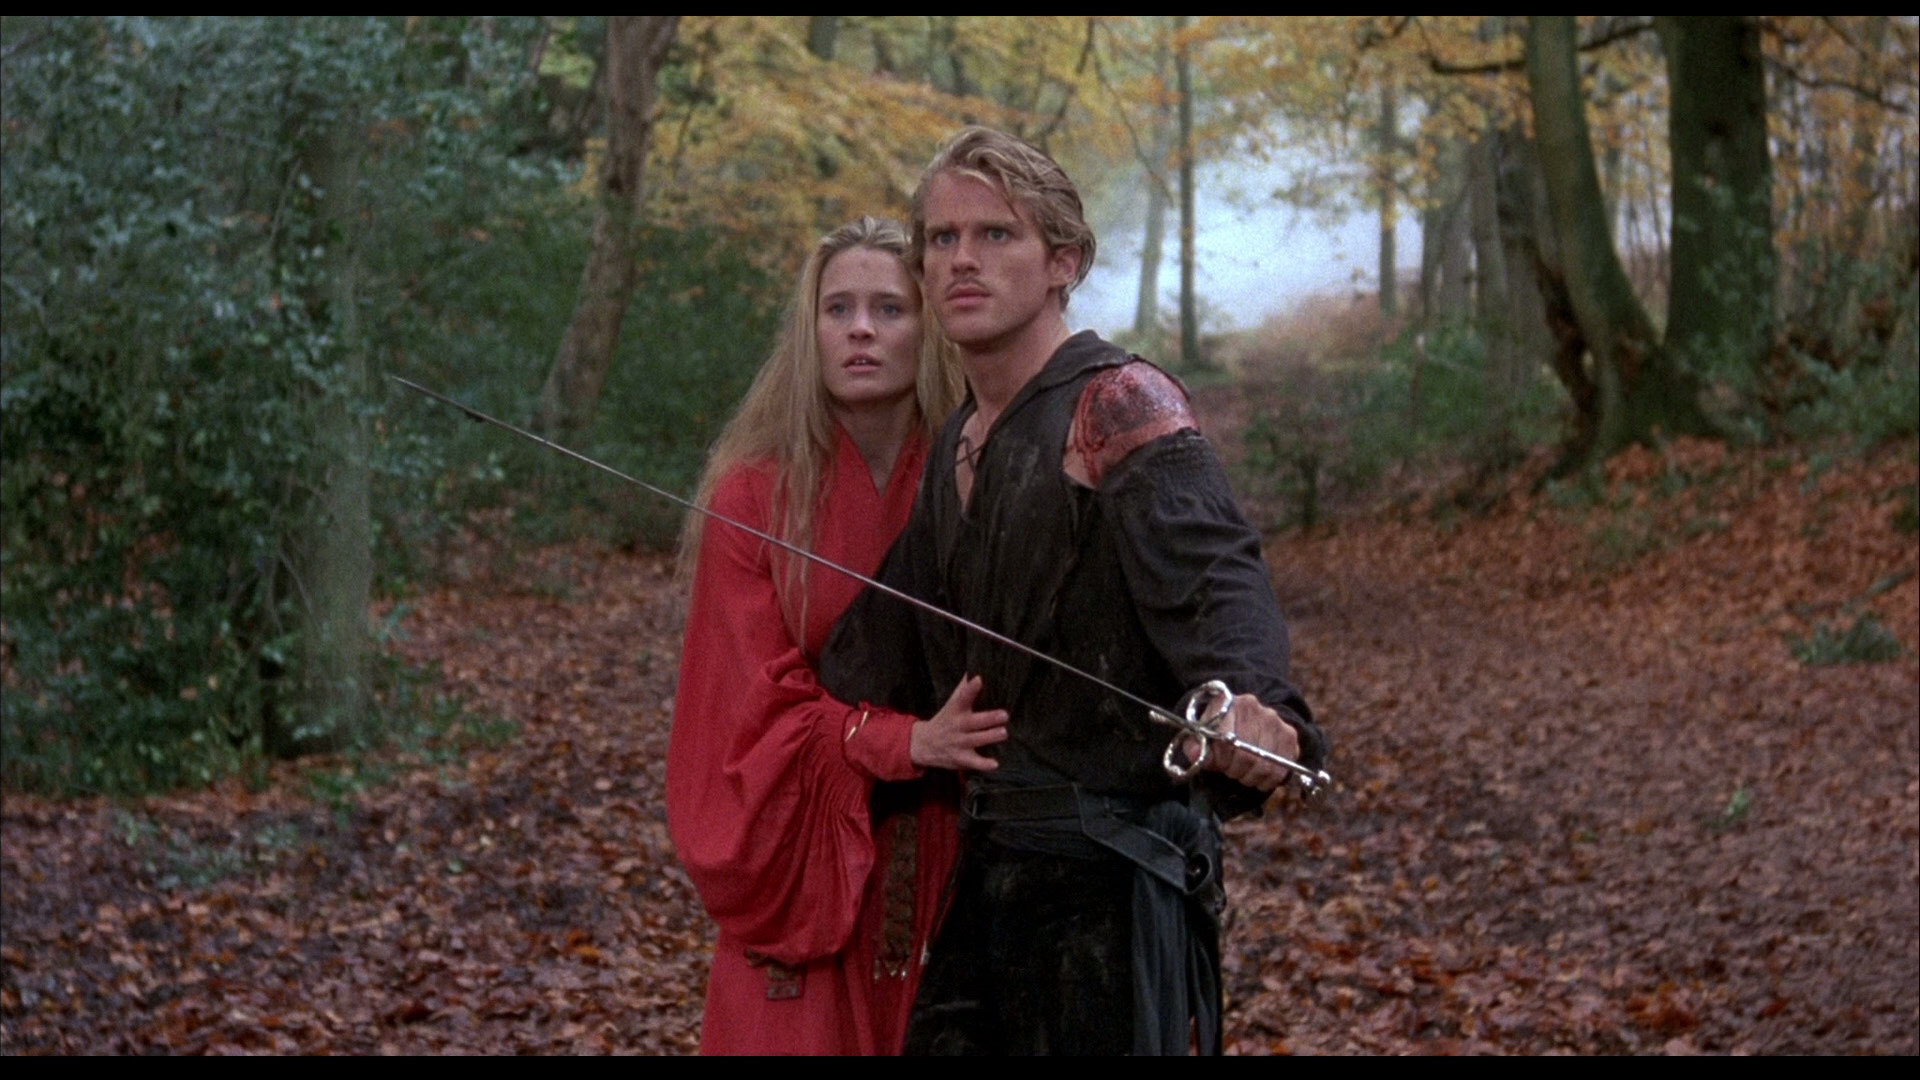 Still from Rob Reiner's The Princess Bride (1987)